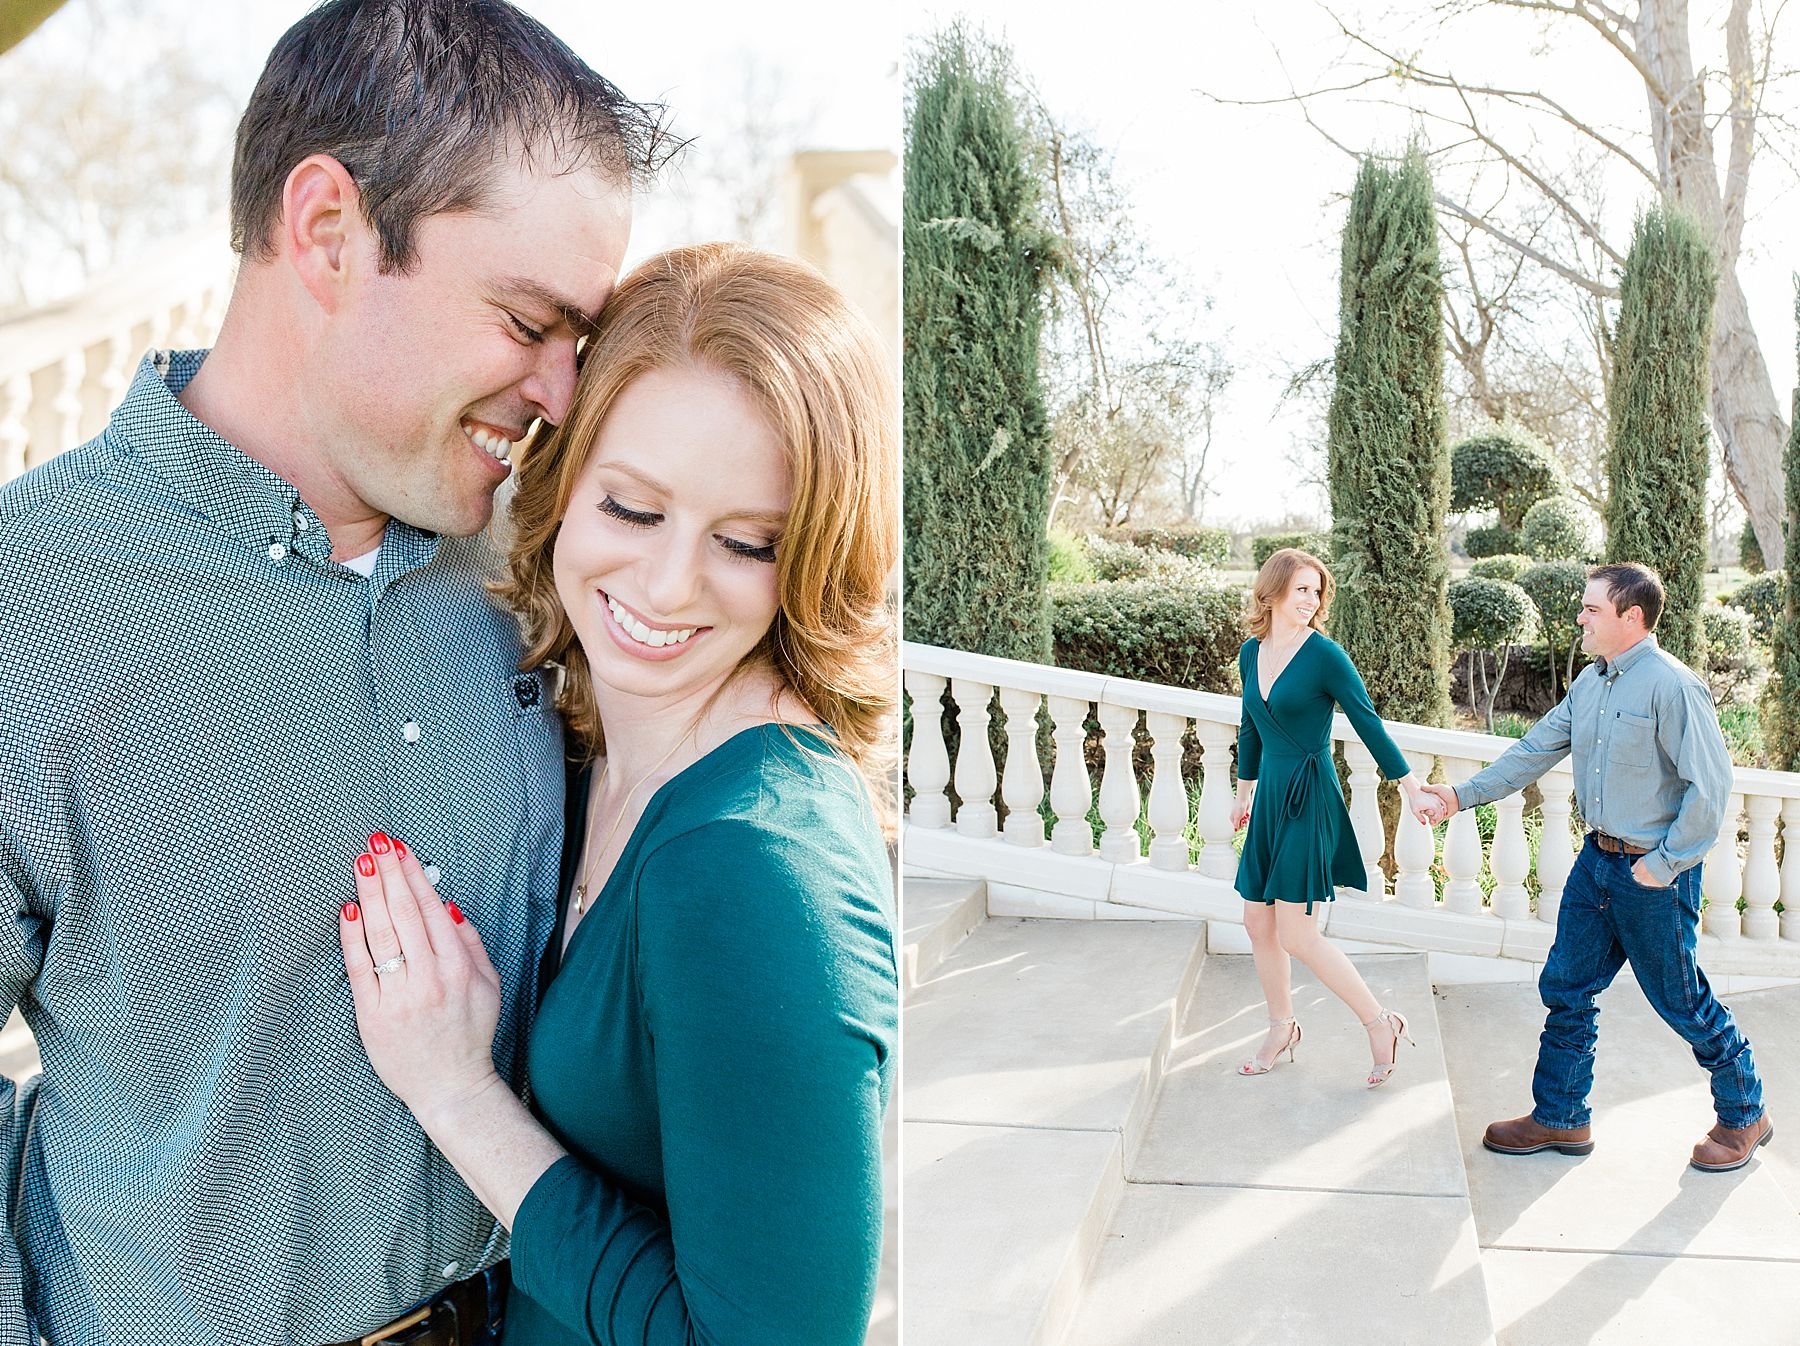 Viaggio Winery Engagement Session - Liz and TJ - Lodi Winery Wedding Photographer_0024.jpg